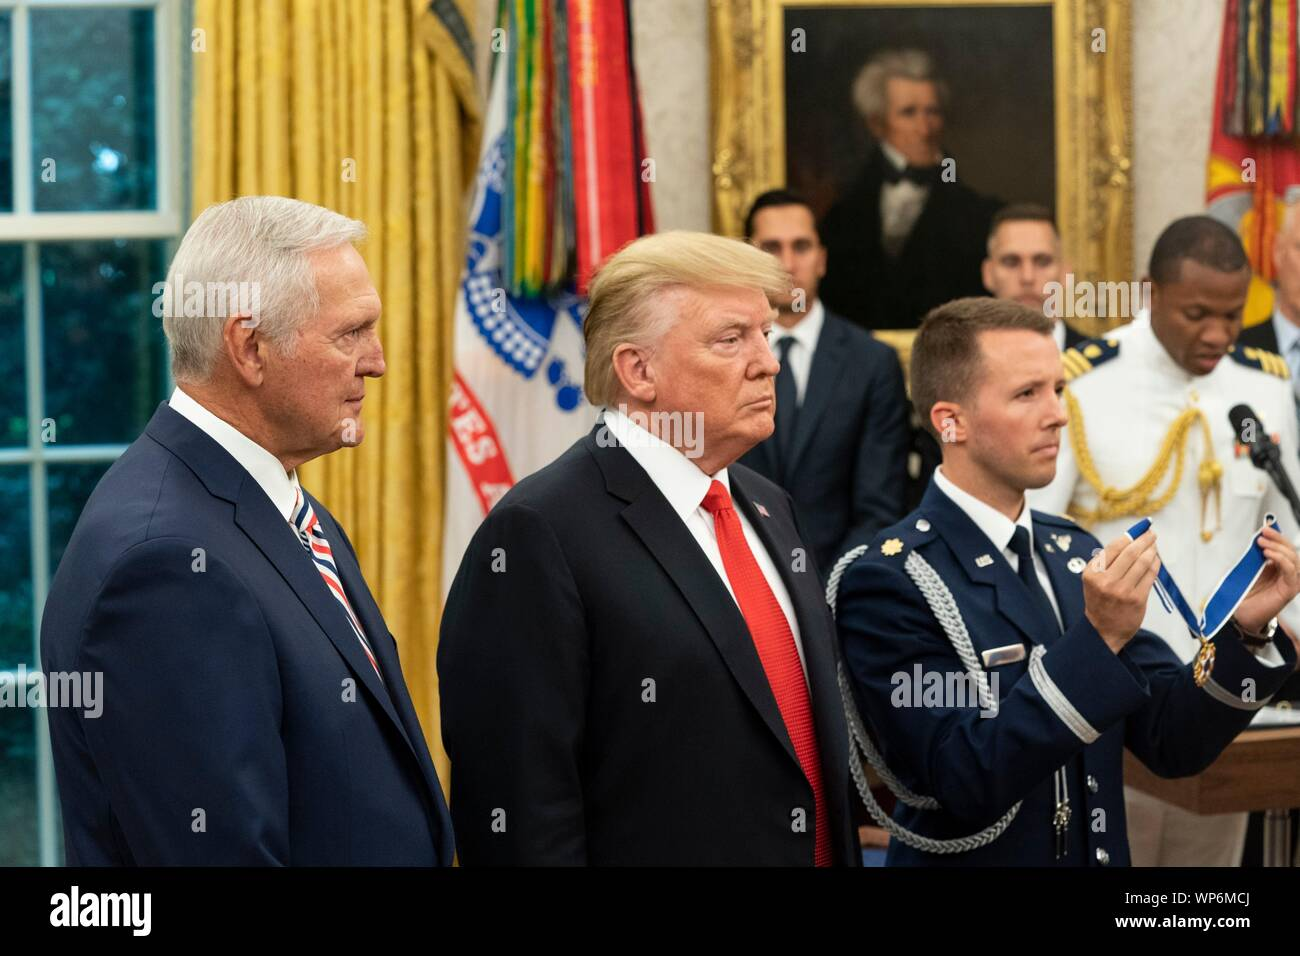 Washington, DC, USA. 05 September, 2019. U.S President Donald Trump, center, awards the Presidential Medal of Freedom, to Hall of Fame Los Angeles Lakers basketball star and legendary NBA General Manager Jerry West during a ceremony in the Oval Office of the White House September 5, 2019 in Washington, DC. Stock Photo